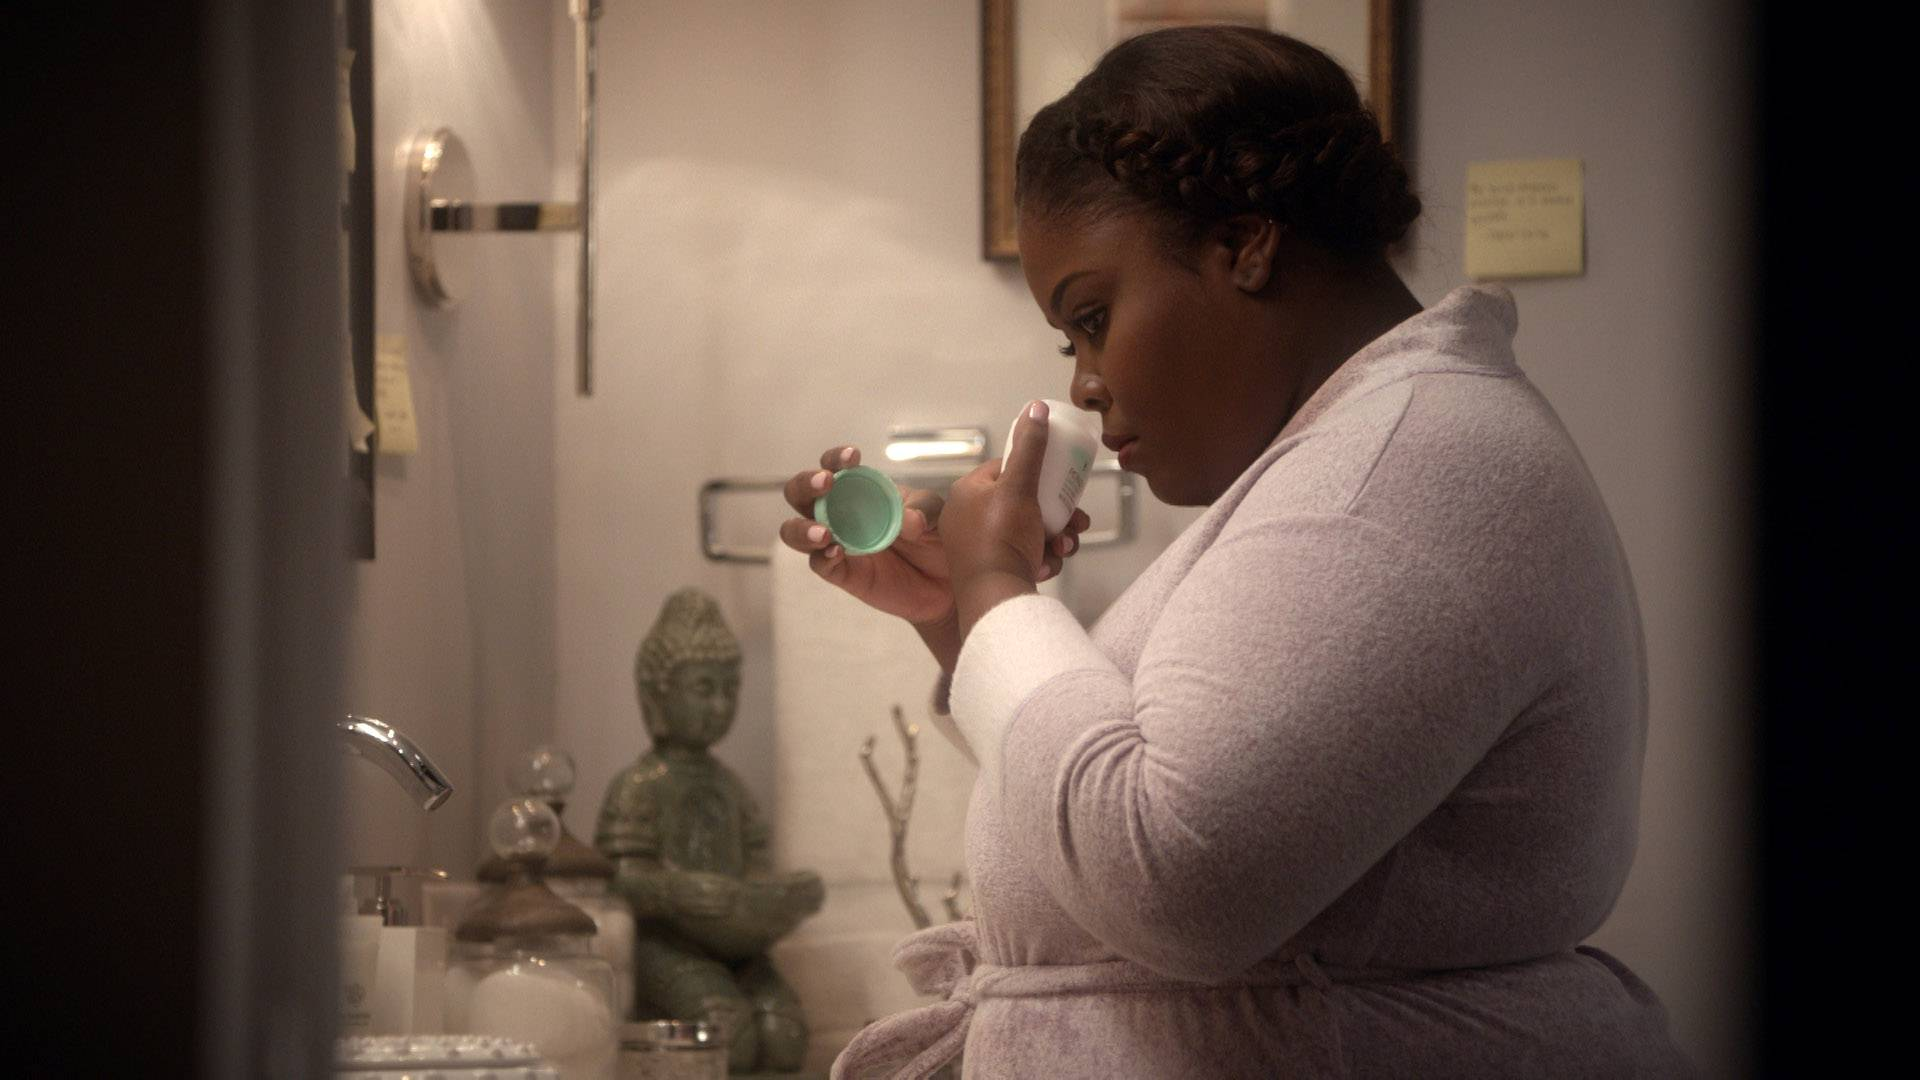 Niecy Home Alone  - Niecy spends some time home alone and gets to pretend to be Mary Jane.   (Photo: BET)